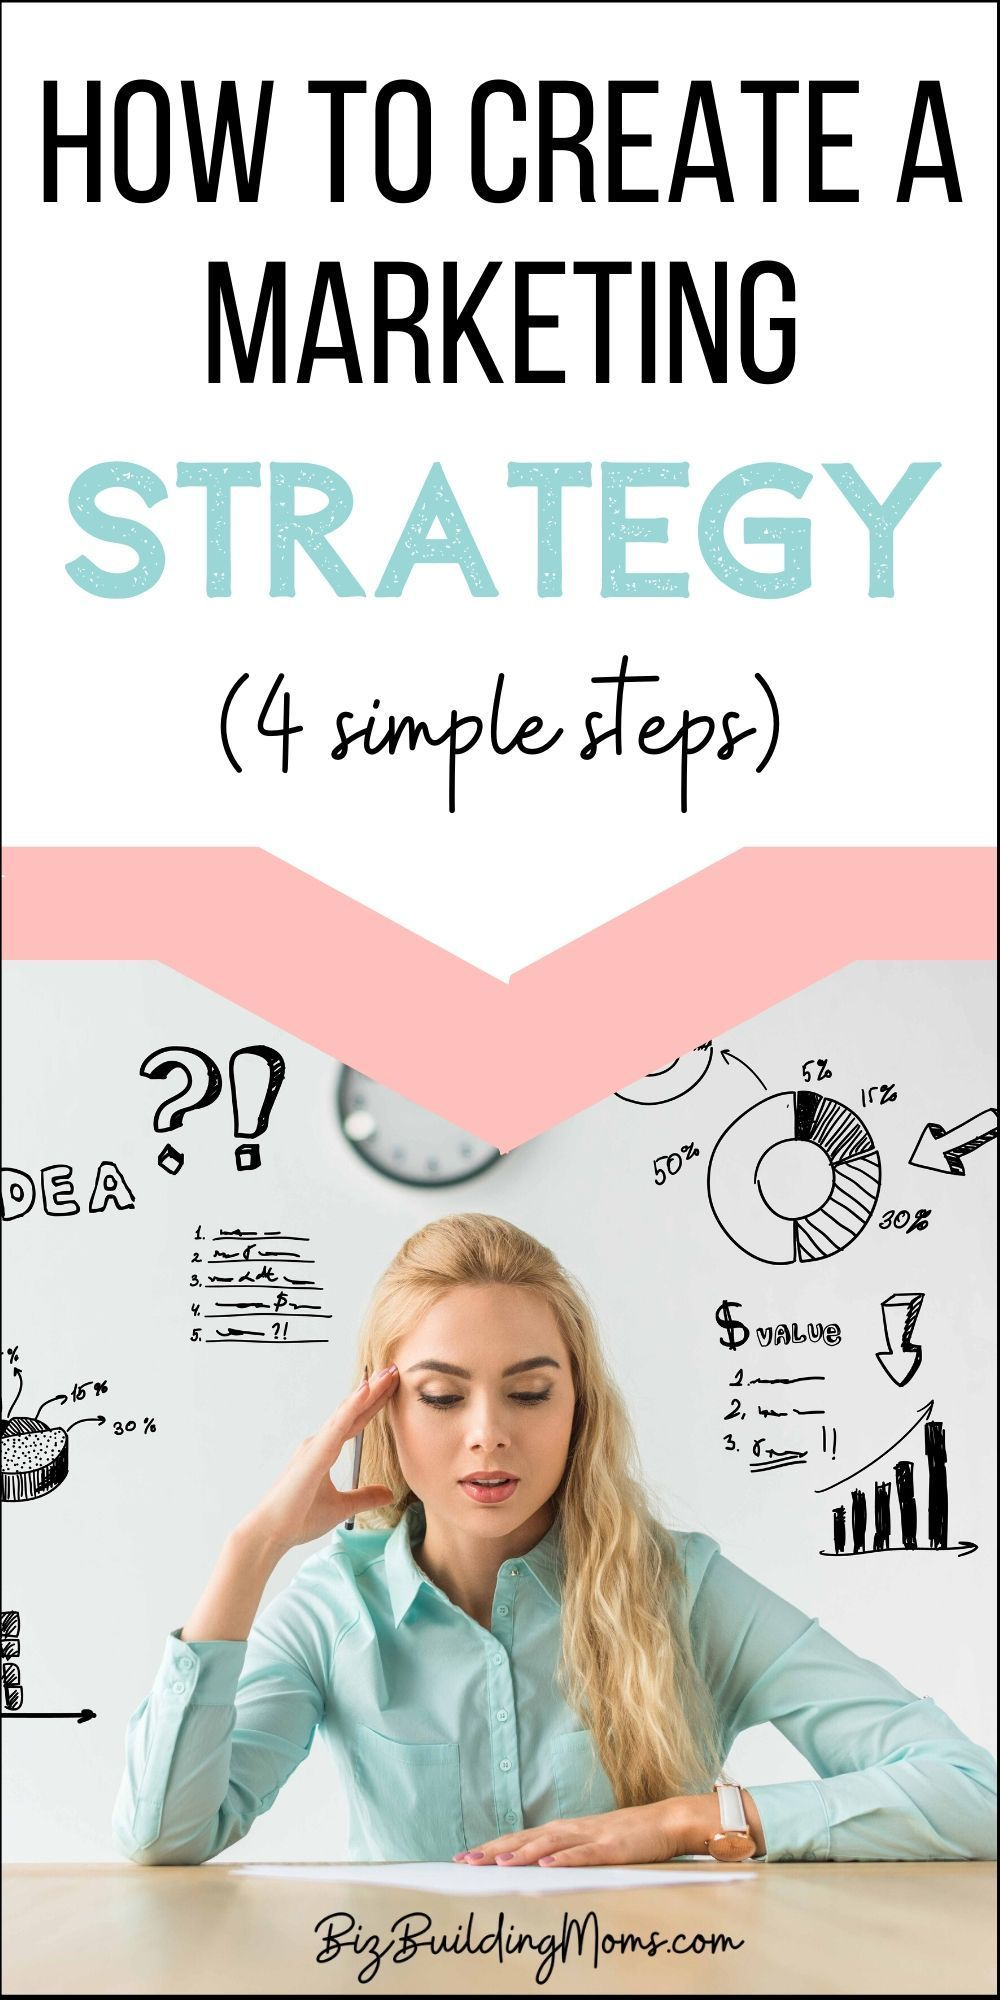 Creating A Marketing Strategy - Tips To Build Your Own | A marketing strategy means coming up with ideas for your business to promote to your target audience. This can include social media, content, email, or any number of other creative ideas. With a former career in business management & marketing, let me help you walk through the steps to build your marketing strategy. #marketing #marketingtips #marketingonline #marketingideas #startabusiness #startablog